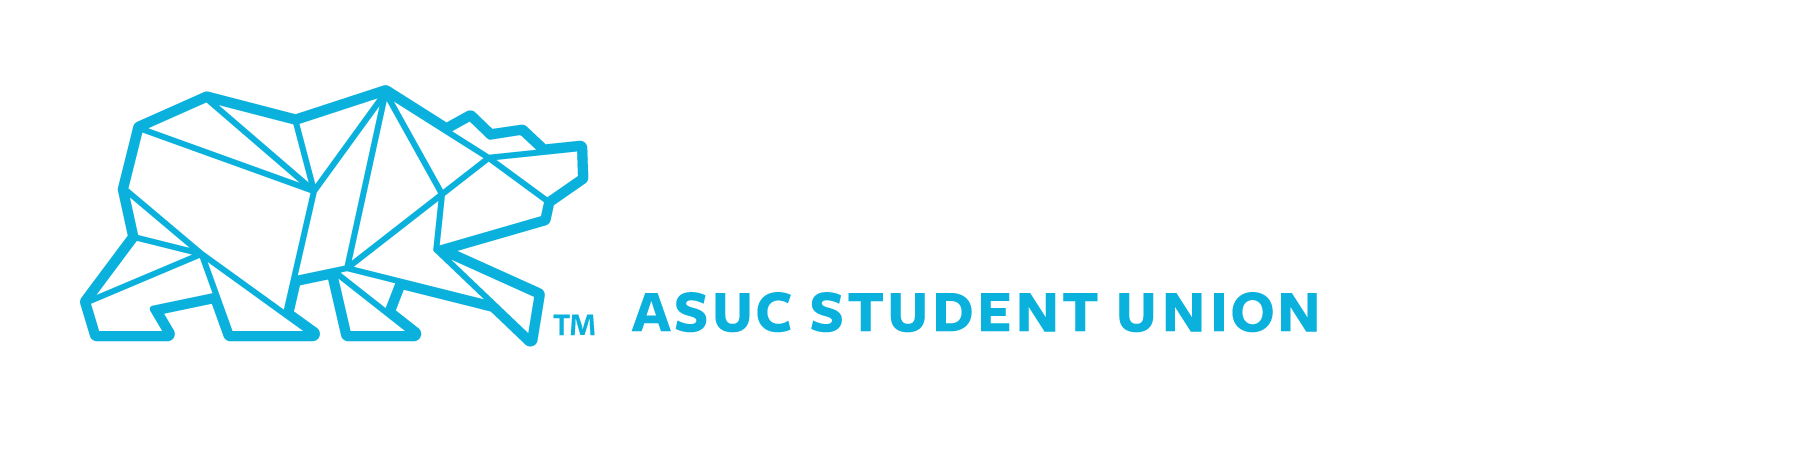 Download event services logo Horizontal in